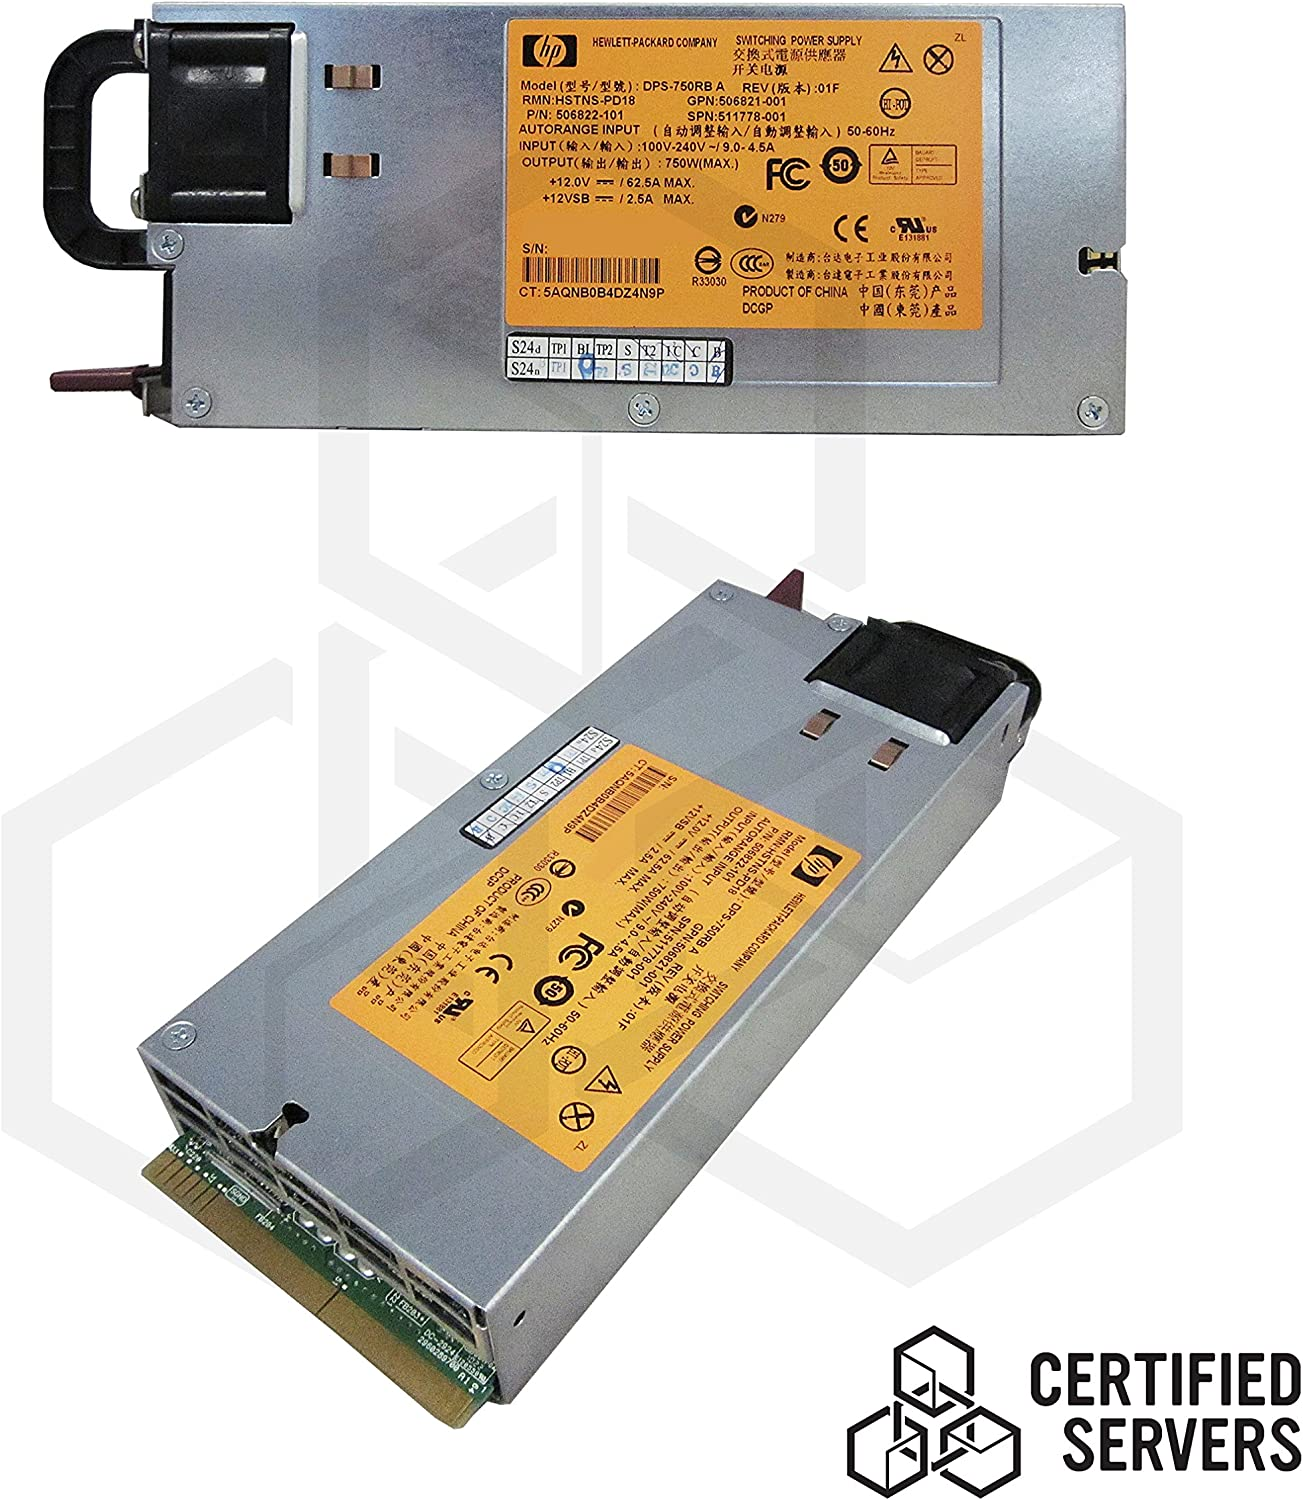 HP - 750W Common Slot Gold Redundant HE Power Supply for ProLiant DL160 G6 and DL165 G7 Servers. Mfr. P/N: DPS-750RB.